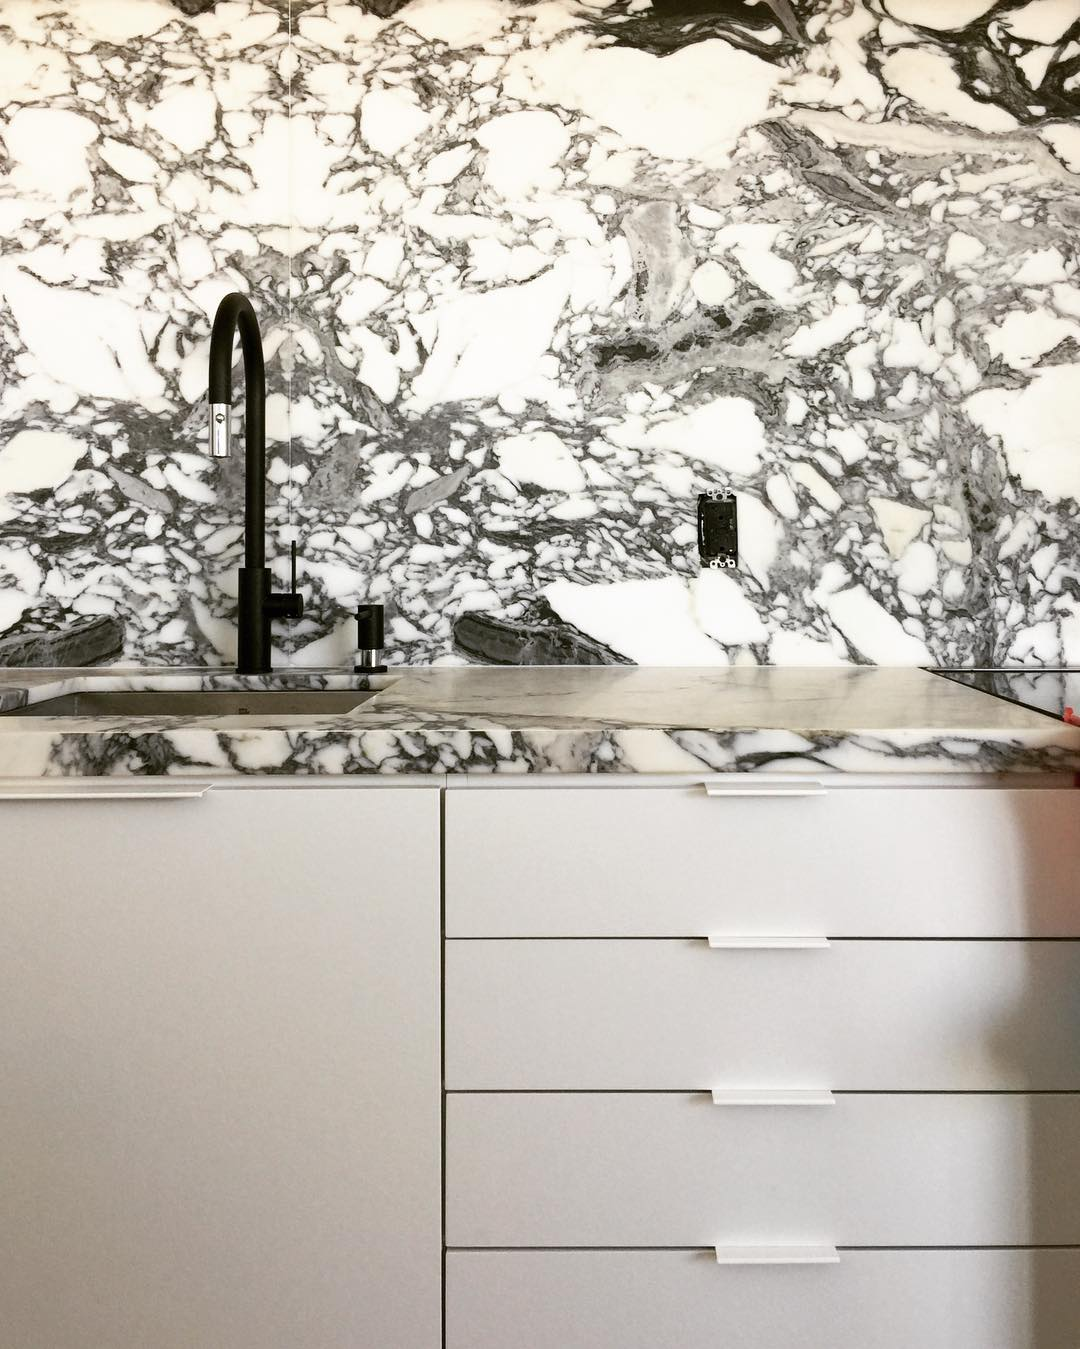 Black and White Marble Kitchen Color Scheme. Timber herringbone flooring kitchen, black taps and hardware.